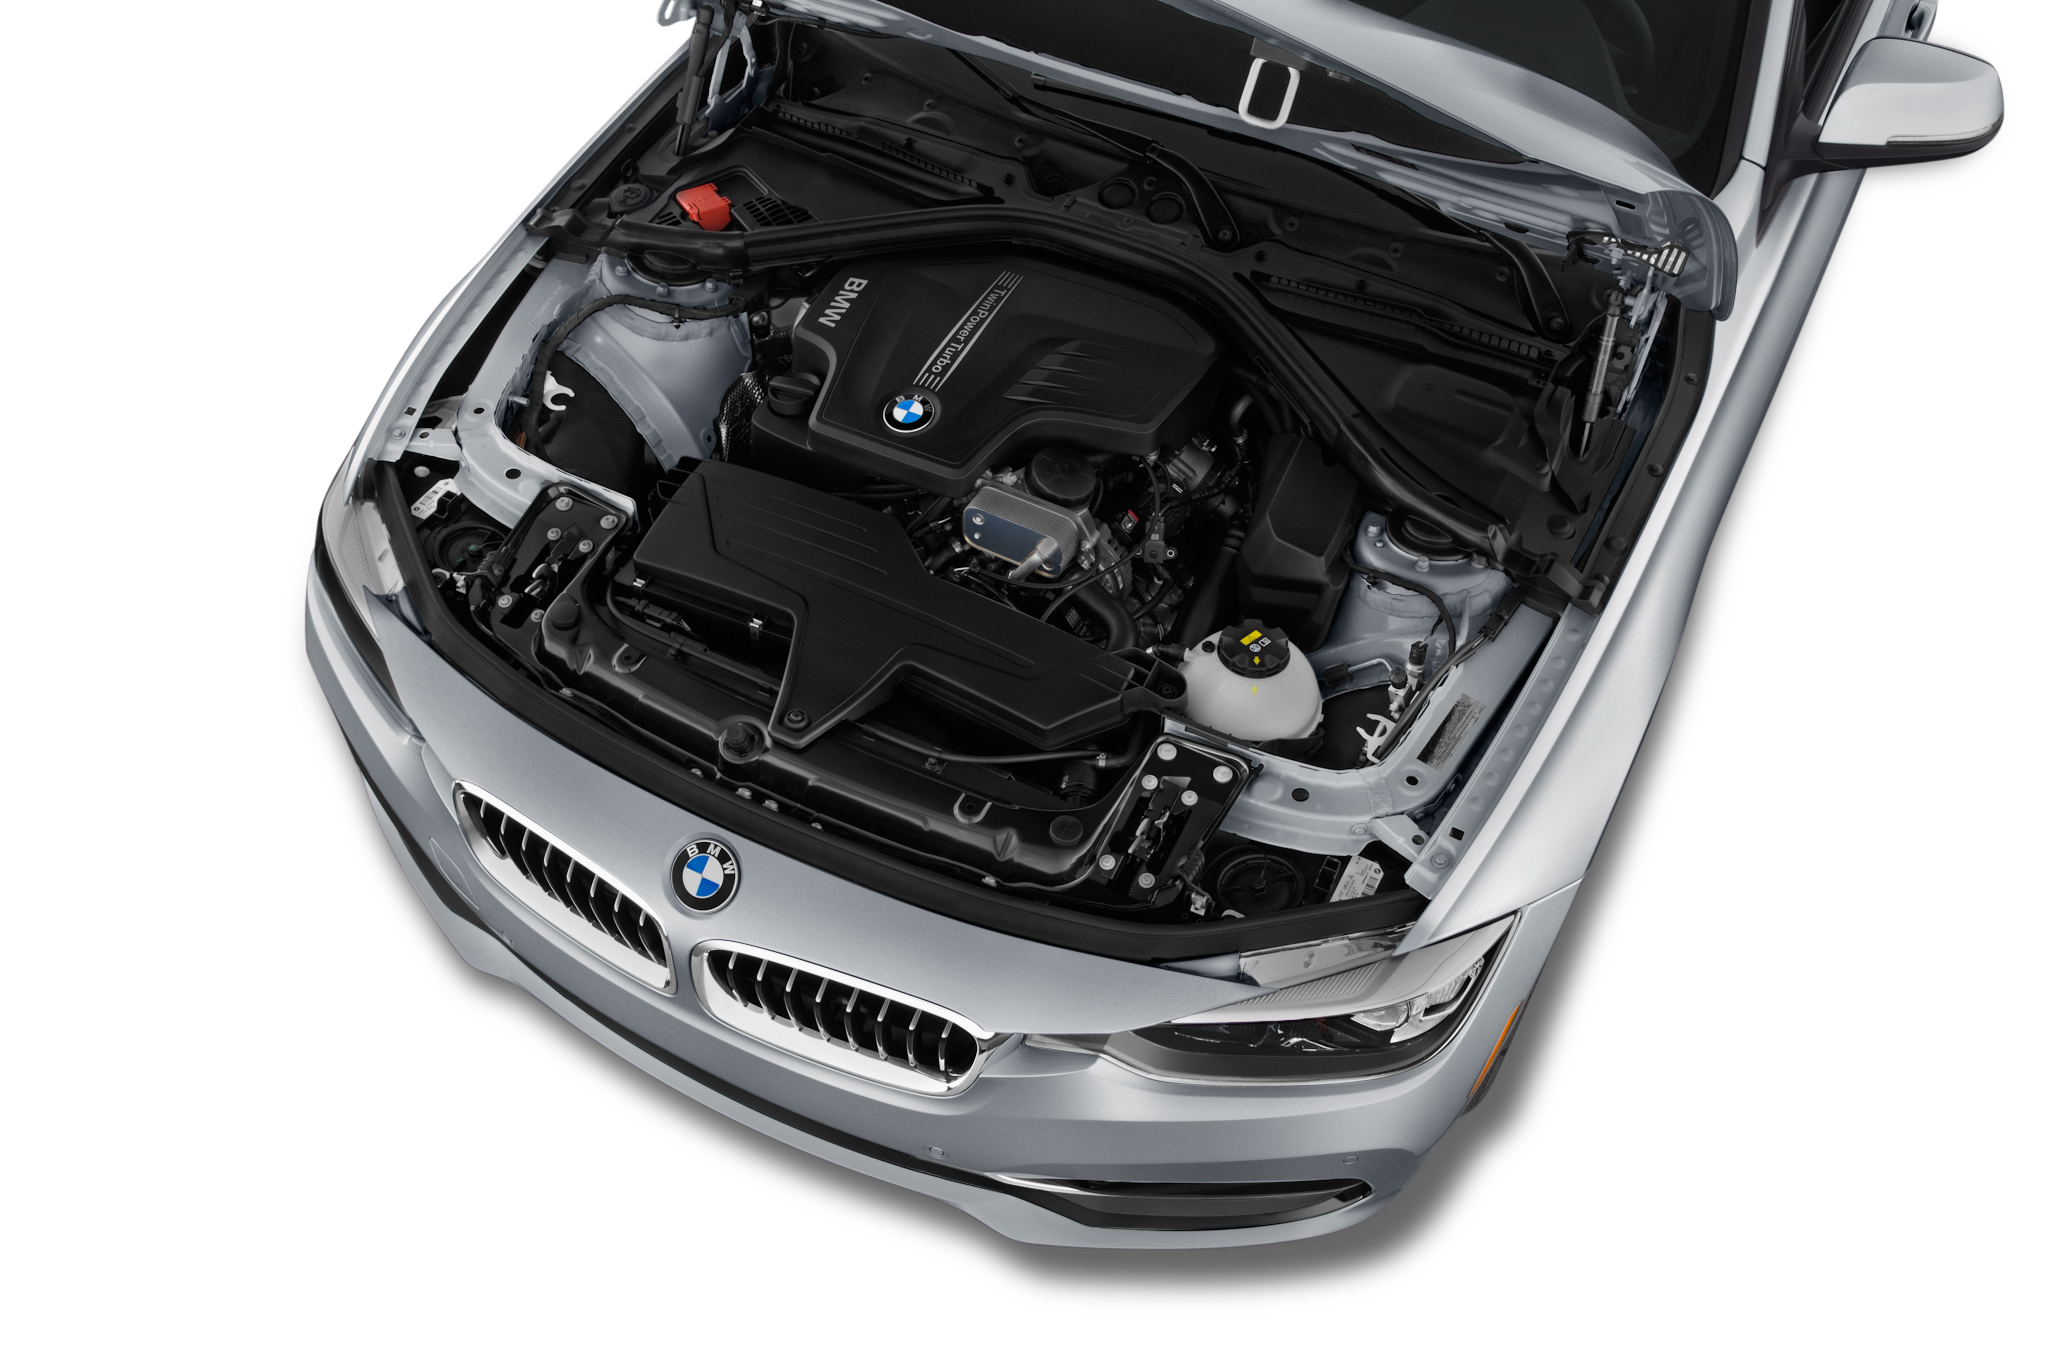 Deep Dive: The 2018 BMW 3 Series Review - Automobile on bmw 840ci engine, bmw m5, bmw 528xi engine, bmw 316i engine, bmw 760i engine, pontiac firebird engine, bmw 318 is engine, bmw x3, bmw 6 series, bmw x6, bmw 5 series, bmw 7 series, bmw x5, bmw 735i engine, bmw 1 series, audi a4, bmw 540i engine, bmw e21 engine, chevy el camino engine, bmw m3, audi a6, bmw 323i engine, station wagon, toyota truck engine, mercedes-benz c-class, bmw 325ci engine, bmw 740i engine, bmw e46, bmw 750i engine, bmw 545i engine, honda accord, bmw 528e engine, bmw 535i engine, mercedes-benz e-class, bmw 525xi engine, bmw e90, bmw 318i engine,